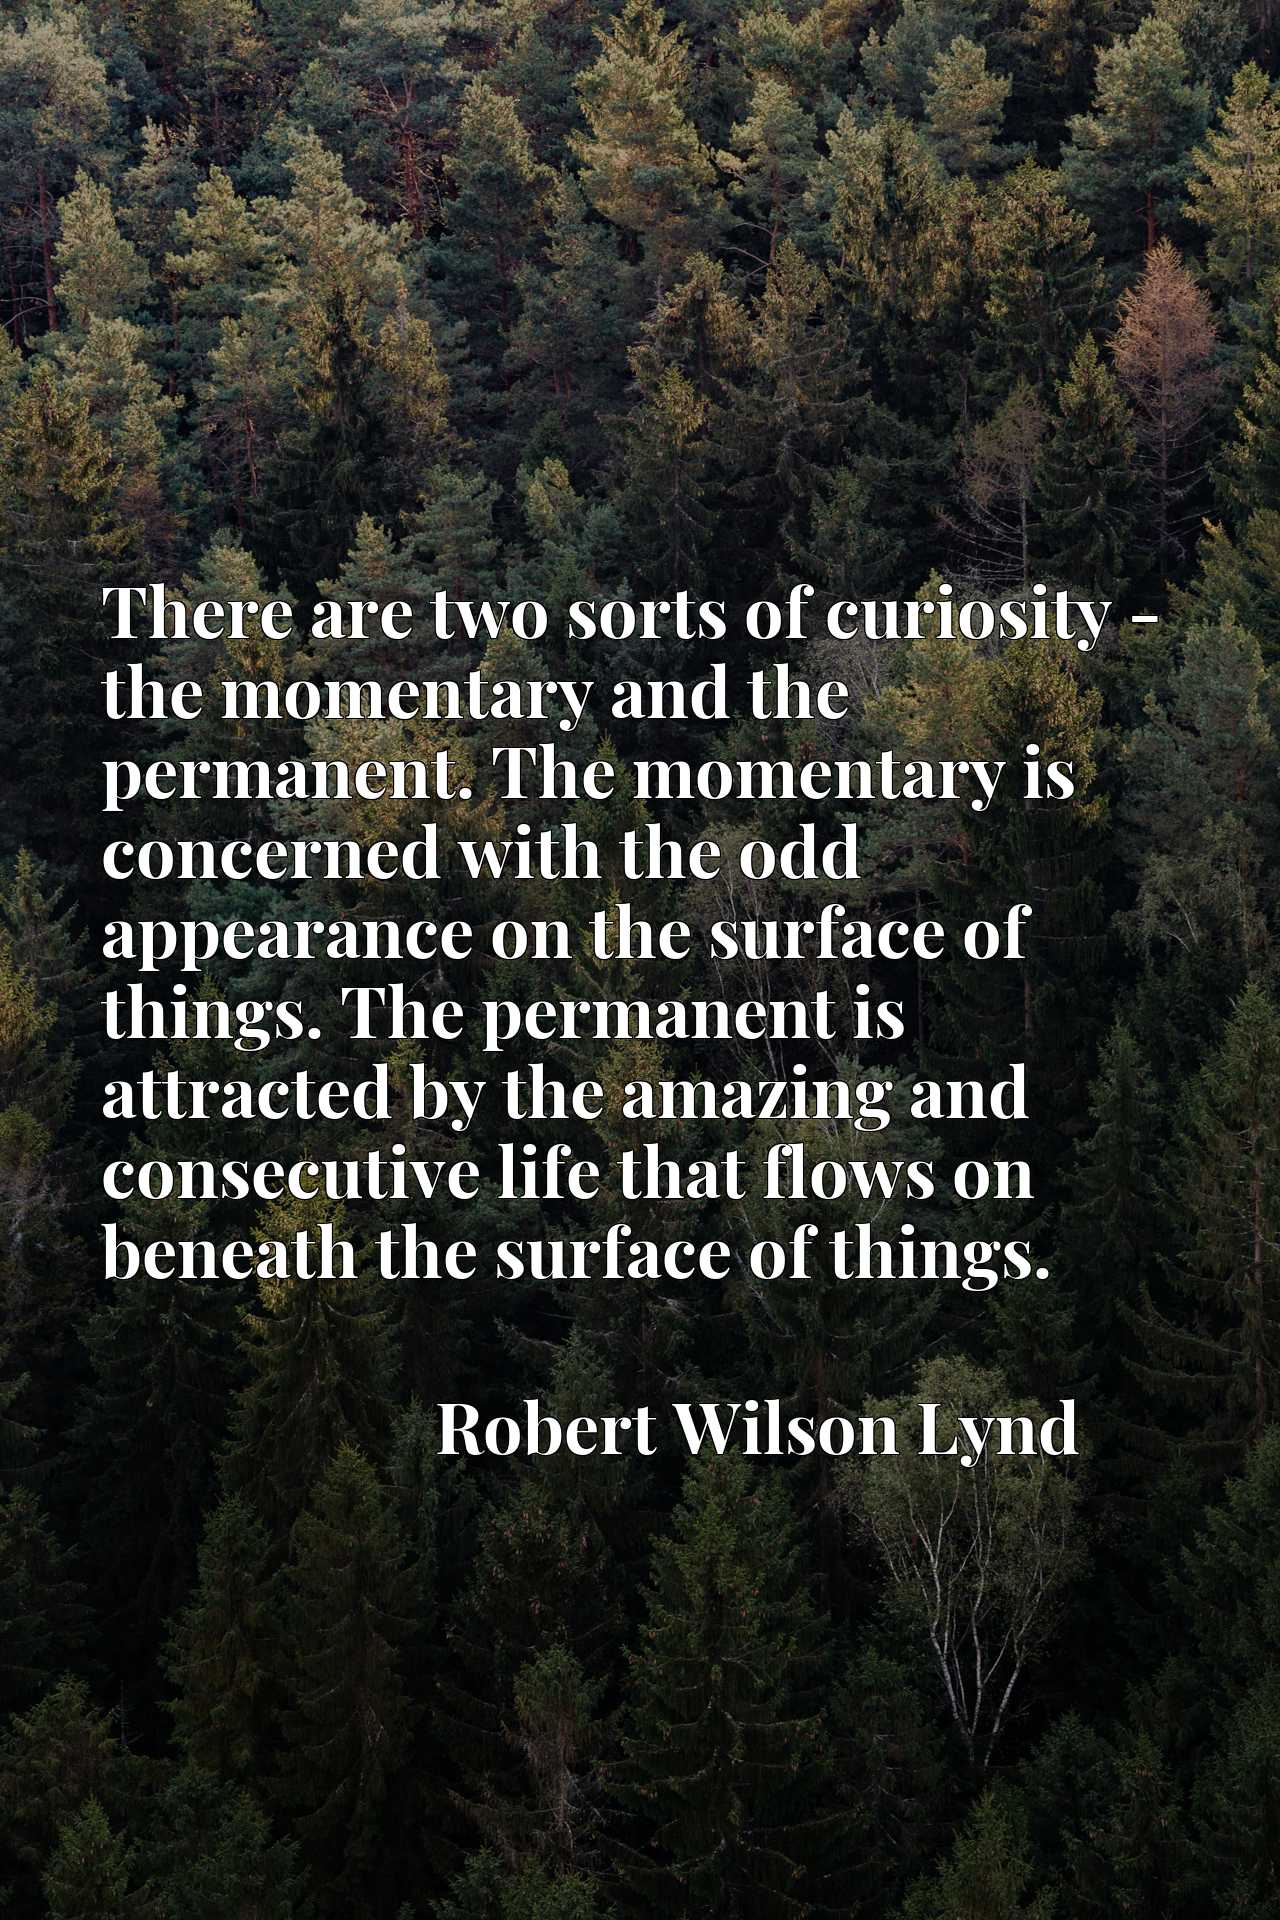 There are two sorts of curiosity - the momentary and the permanent. The momentary is concerned with the odd appearance on the surface of things. The permanent is attracted by the amazing and consecutive life that flows on beneath the surface of things.